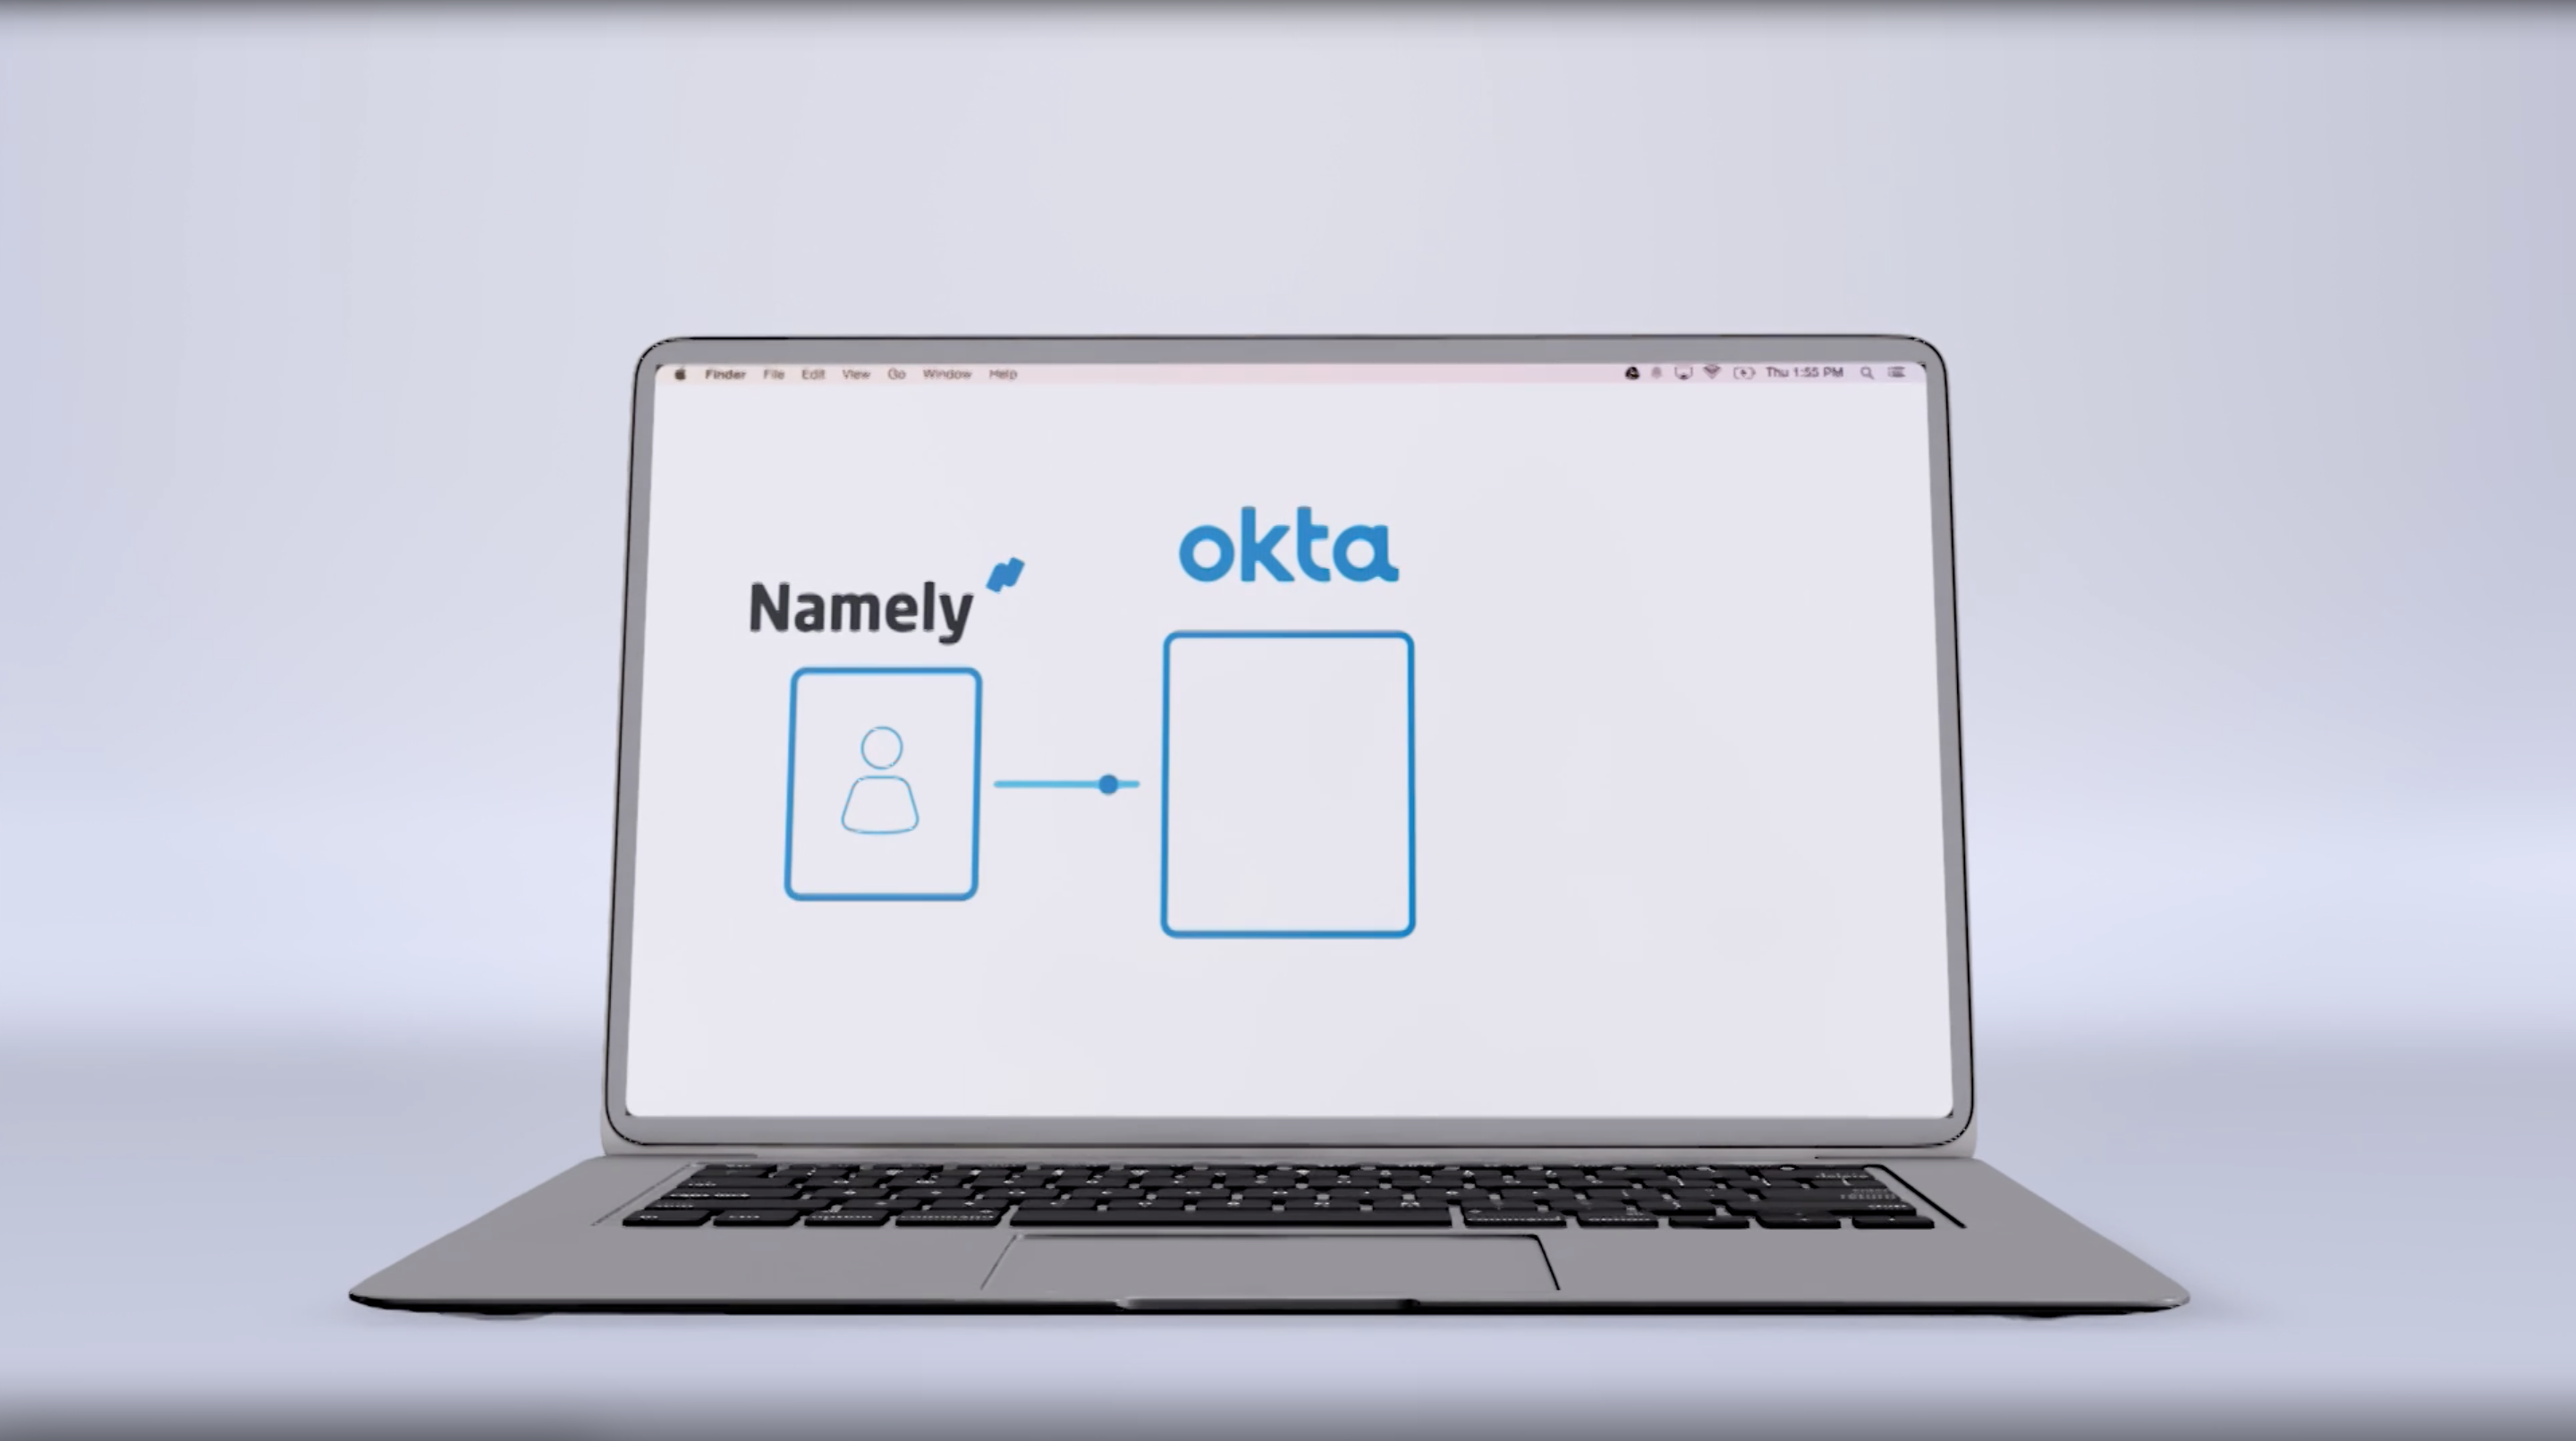 Demo: How Okta and Namely Can Work Together